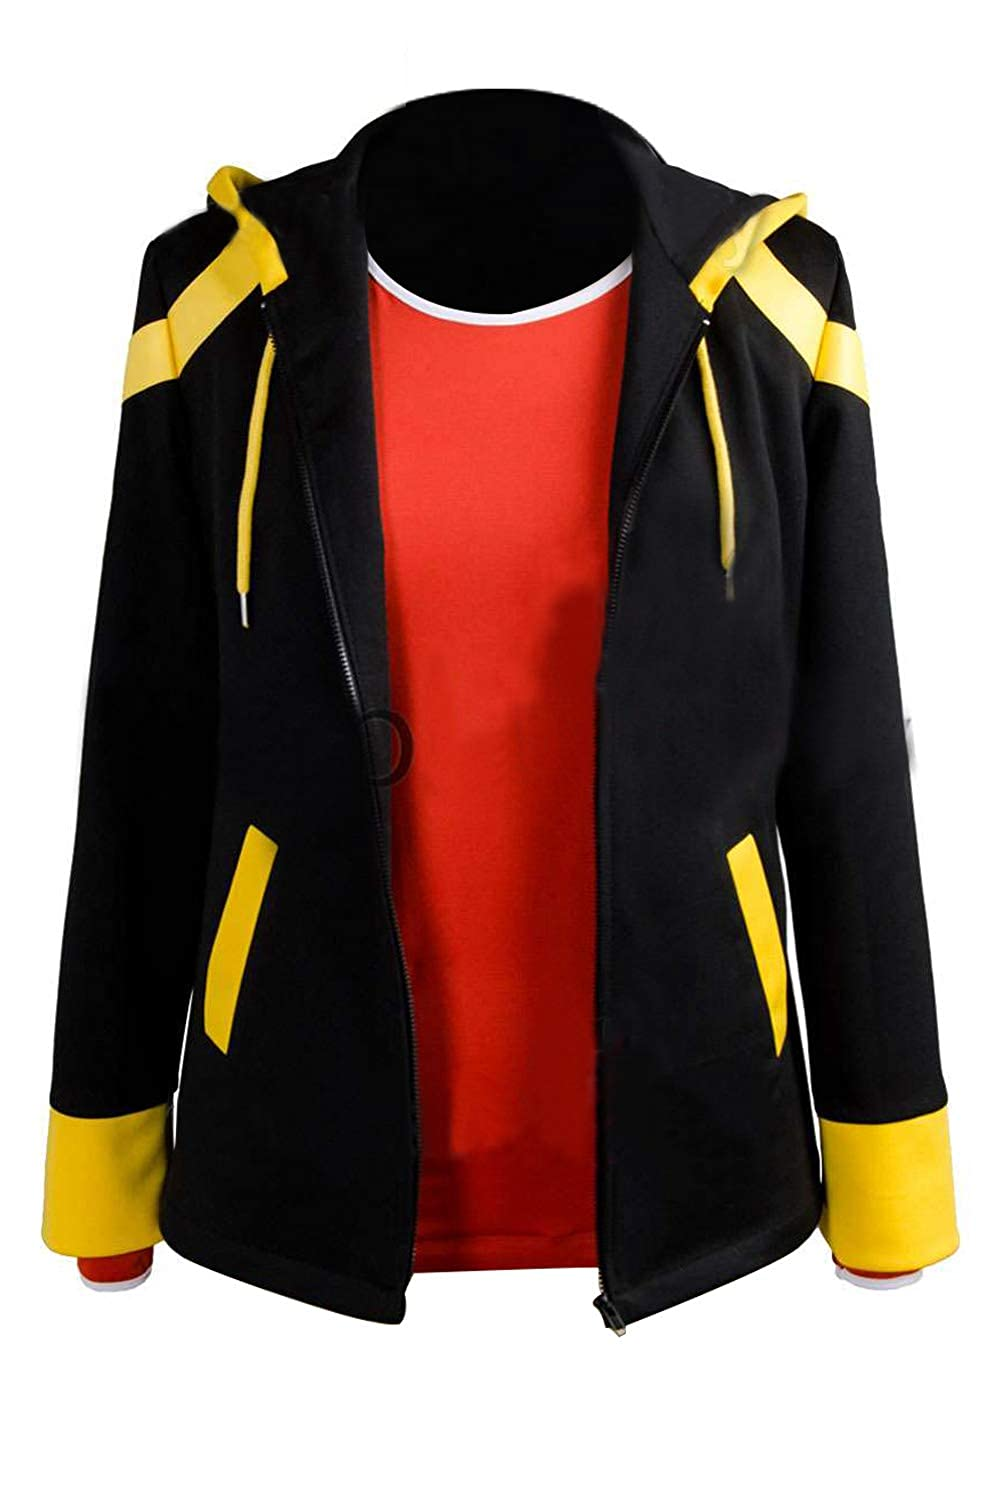 mingL Casual Mystic Messenger 707 Extreme Saeyoung Choi Cosplay Costume Jacket Shirt Suit